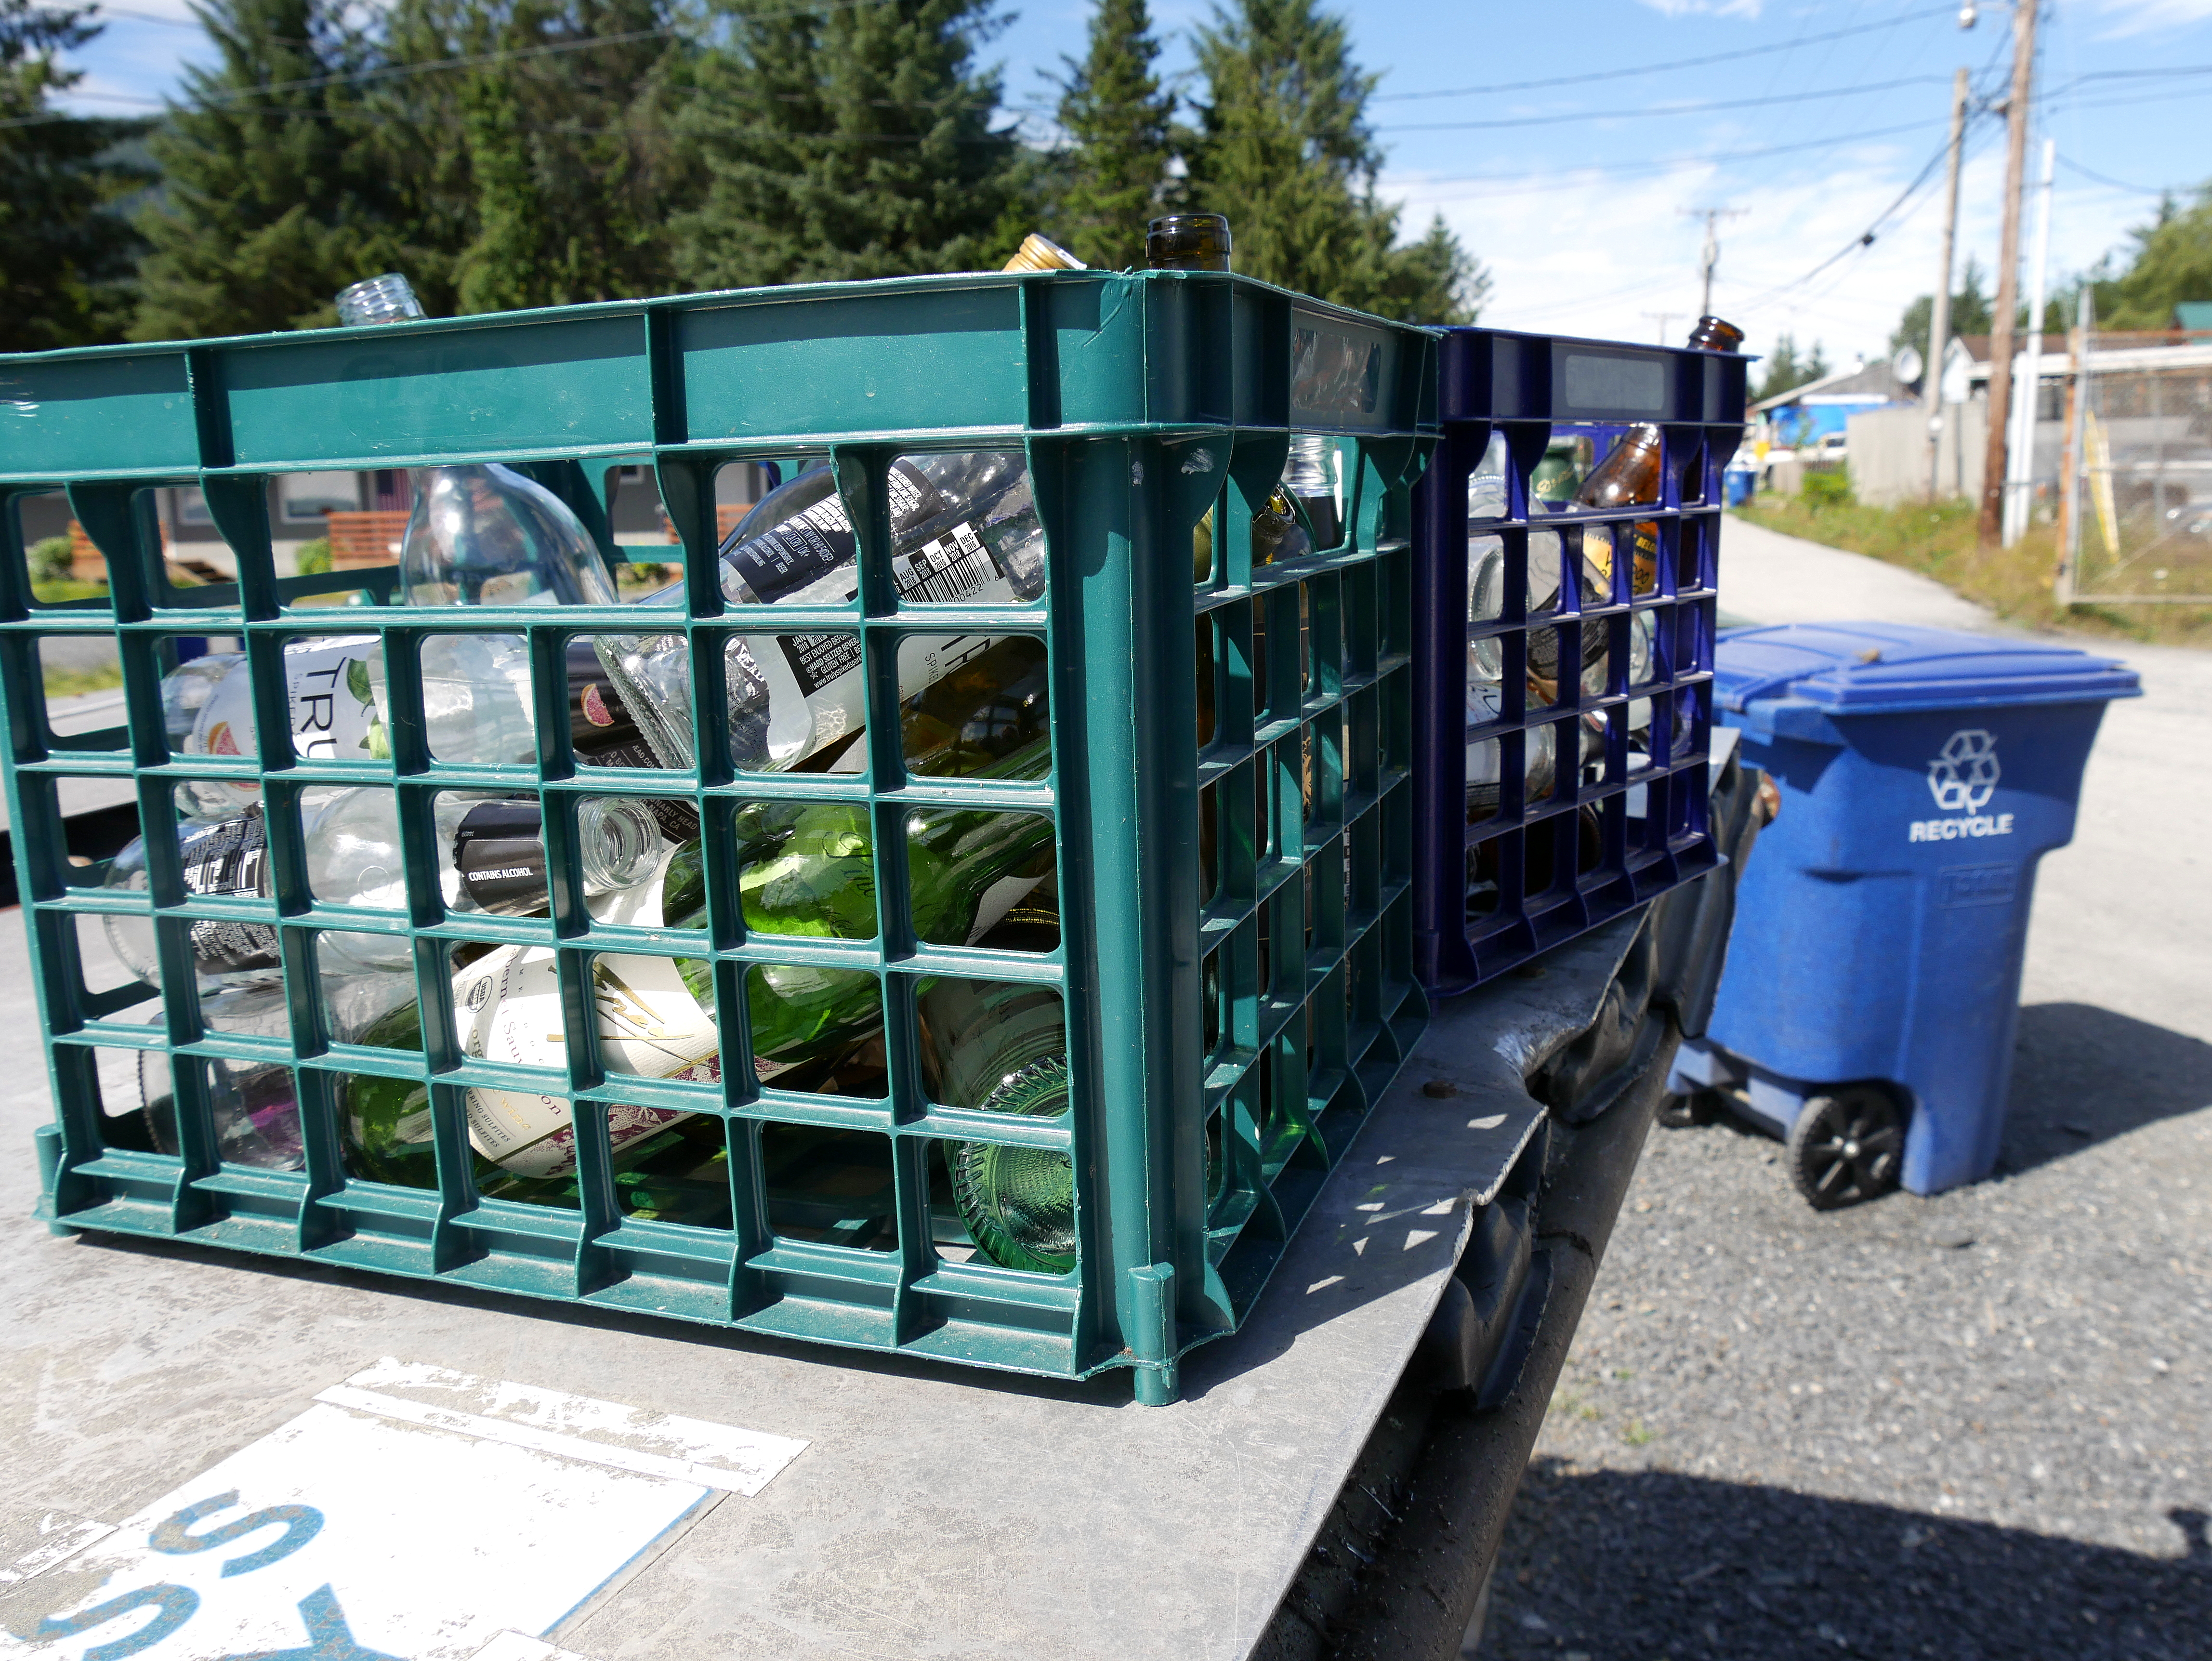 """Crates of glass bottles sit on top of a """"glass only"""" dumpster in Petersburg. (Photo by Angela Denning/KFSK)"""